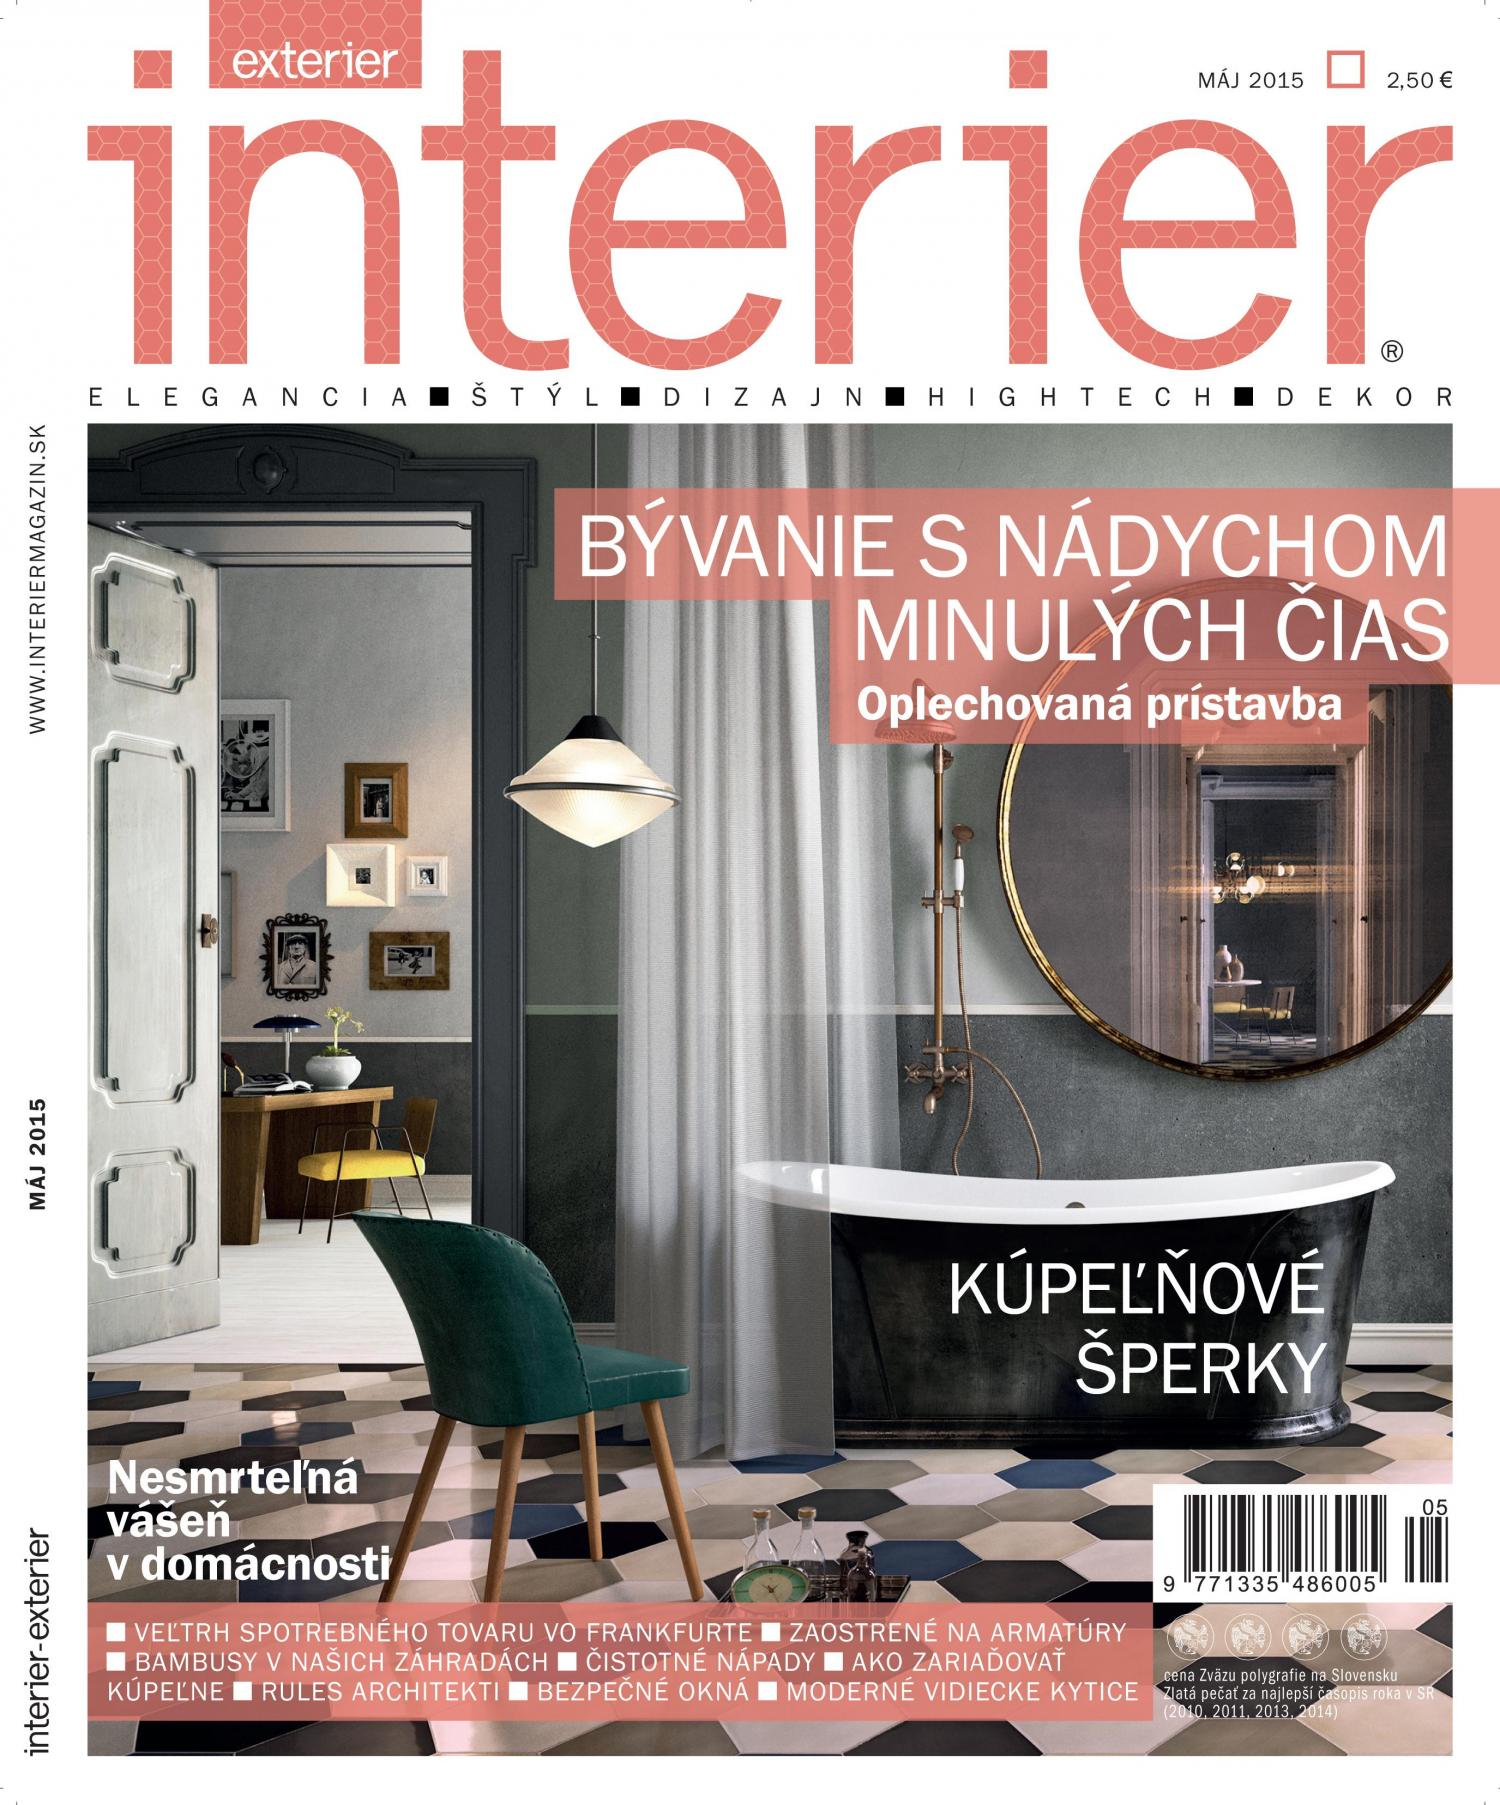 Interier/Exterier, 05/2015, RULES Architekti, 62-65